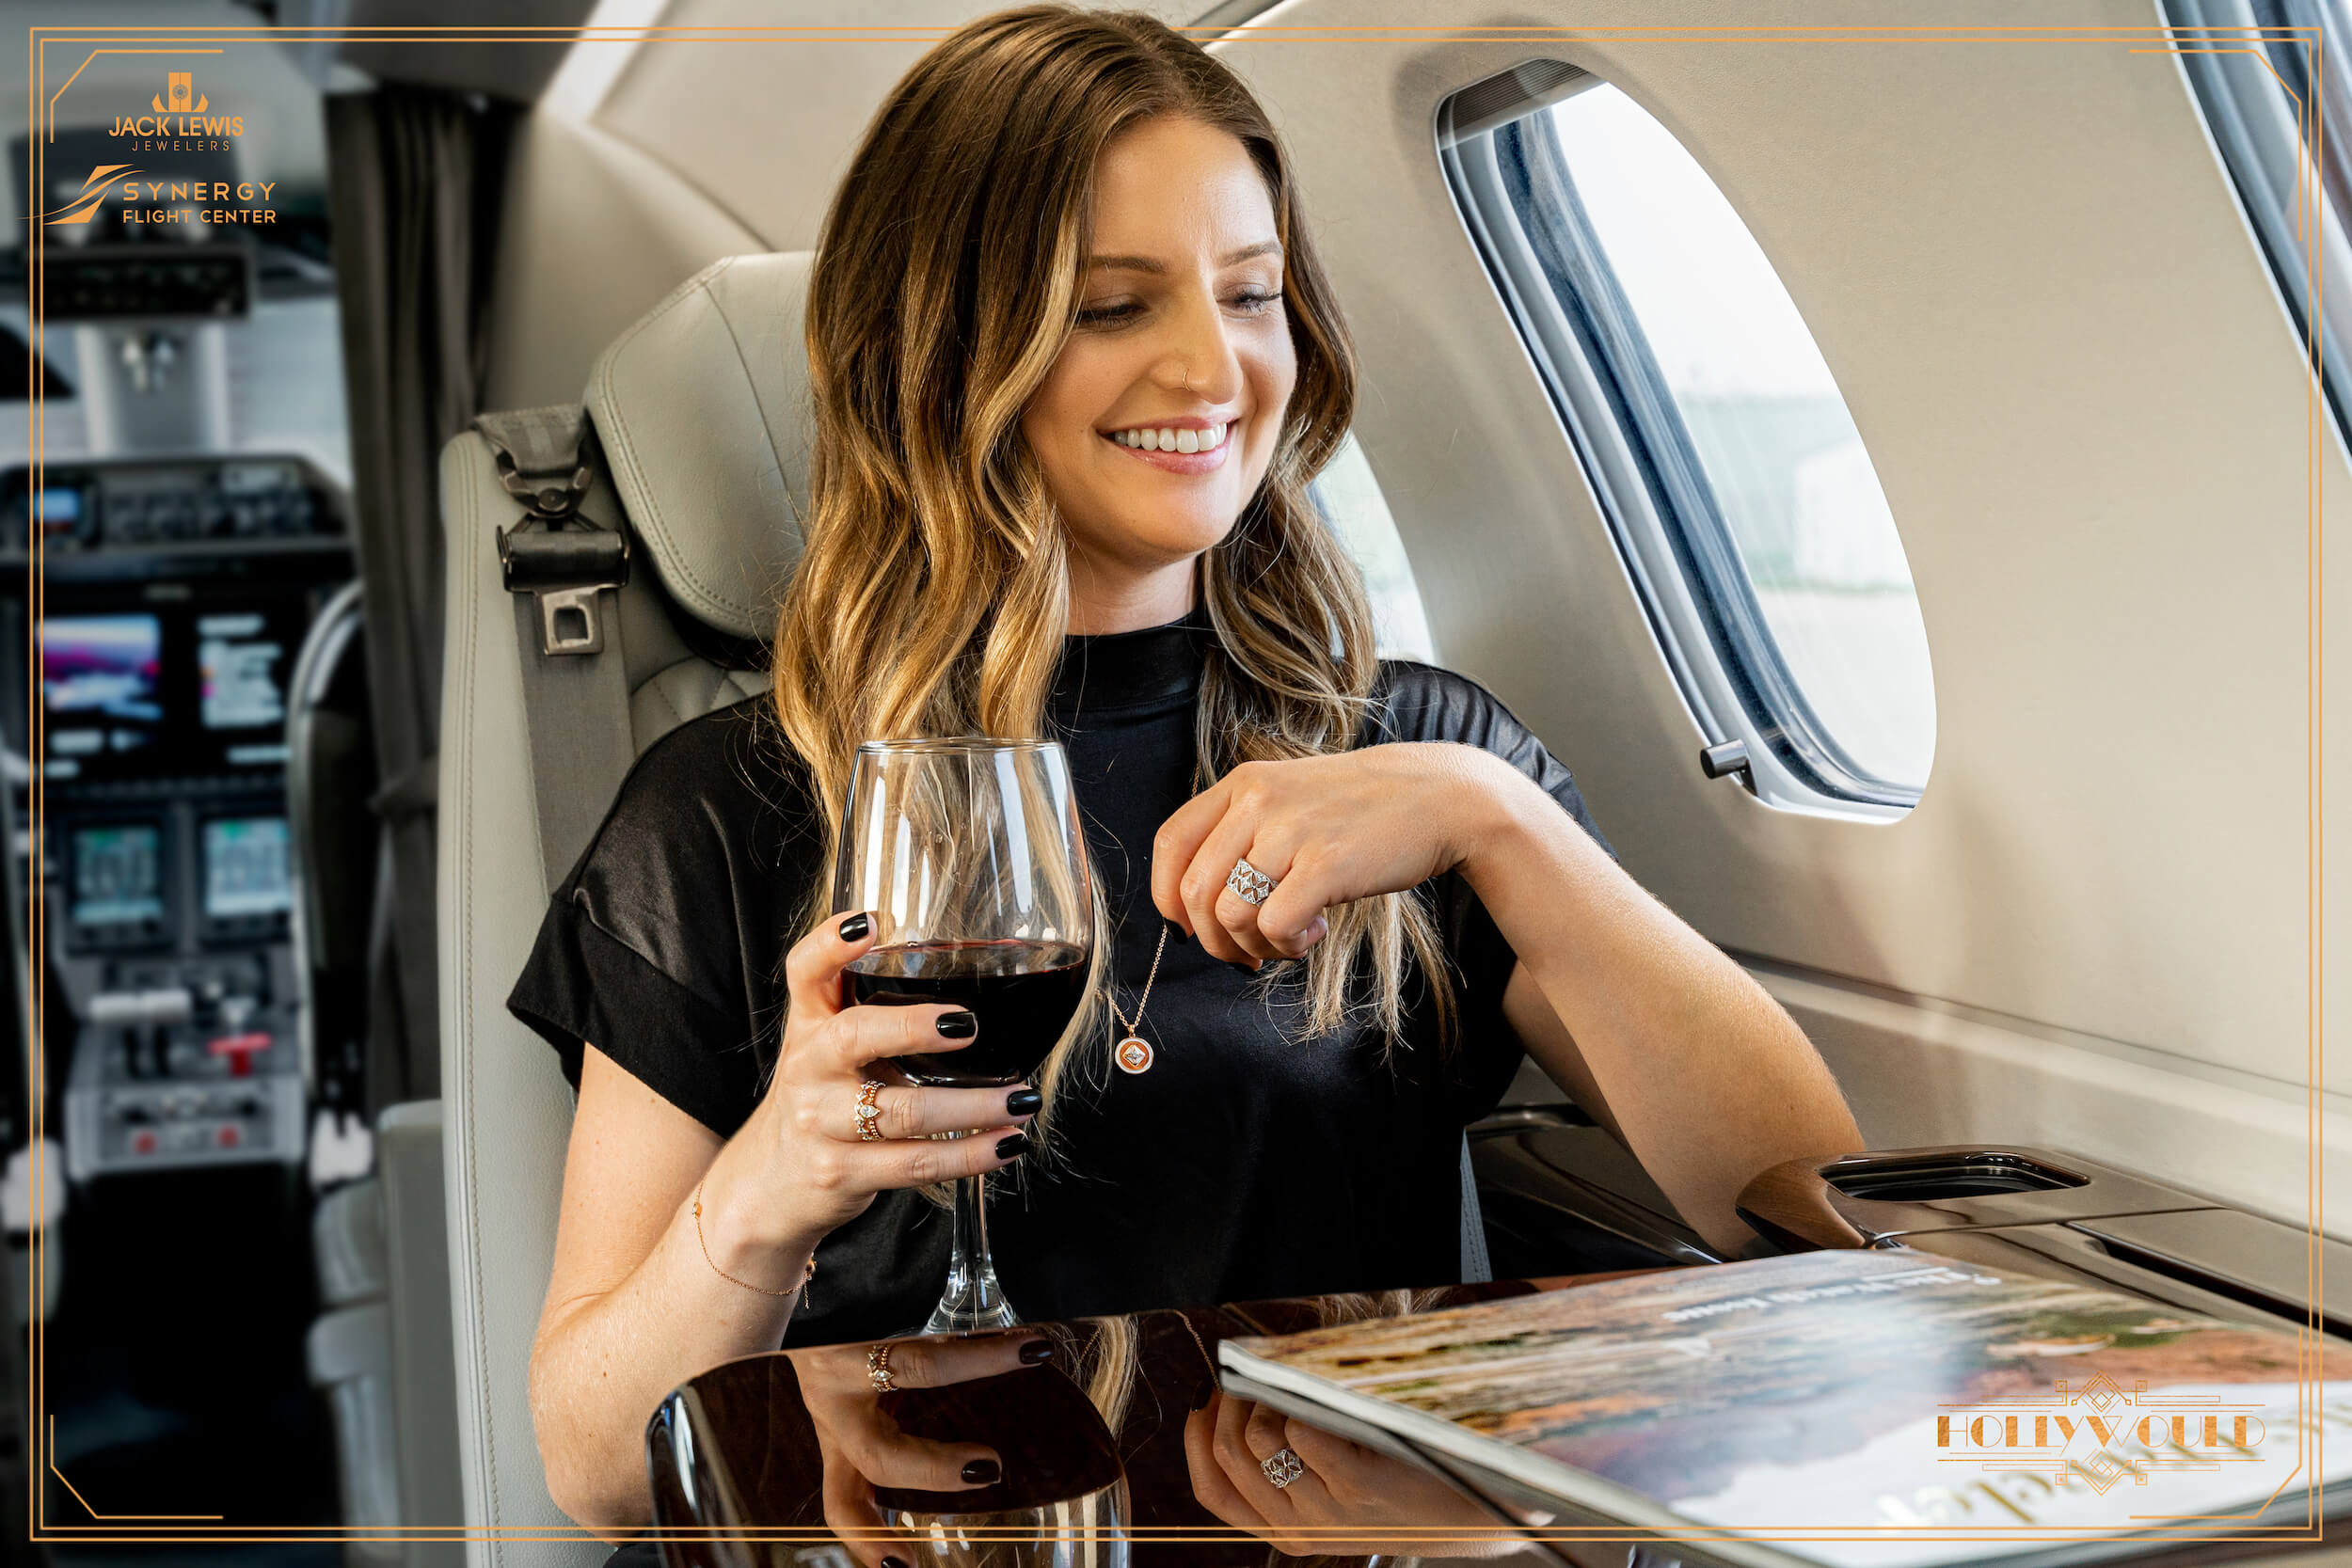 Young woman with long brown hair seated in a private jet at the Synergy Flight Center in Bloomington Illinois. She is drinking  a glass of red wine and smiling while looking out the airplace window. Jewelry by Debeers Forevermark is clearly in view.